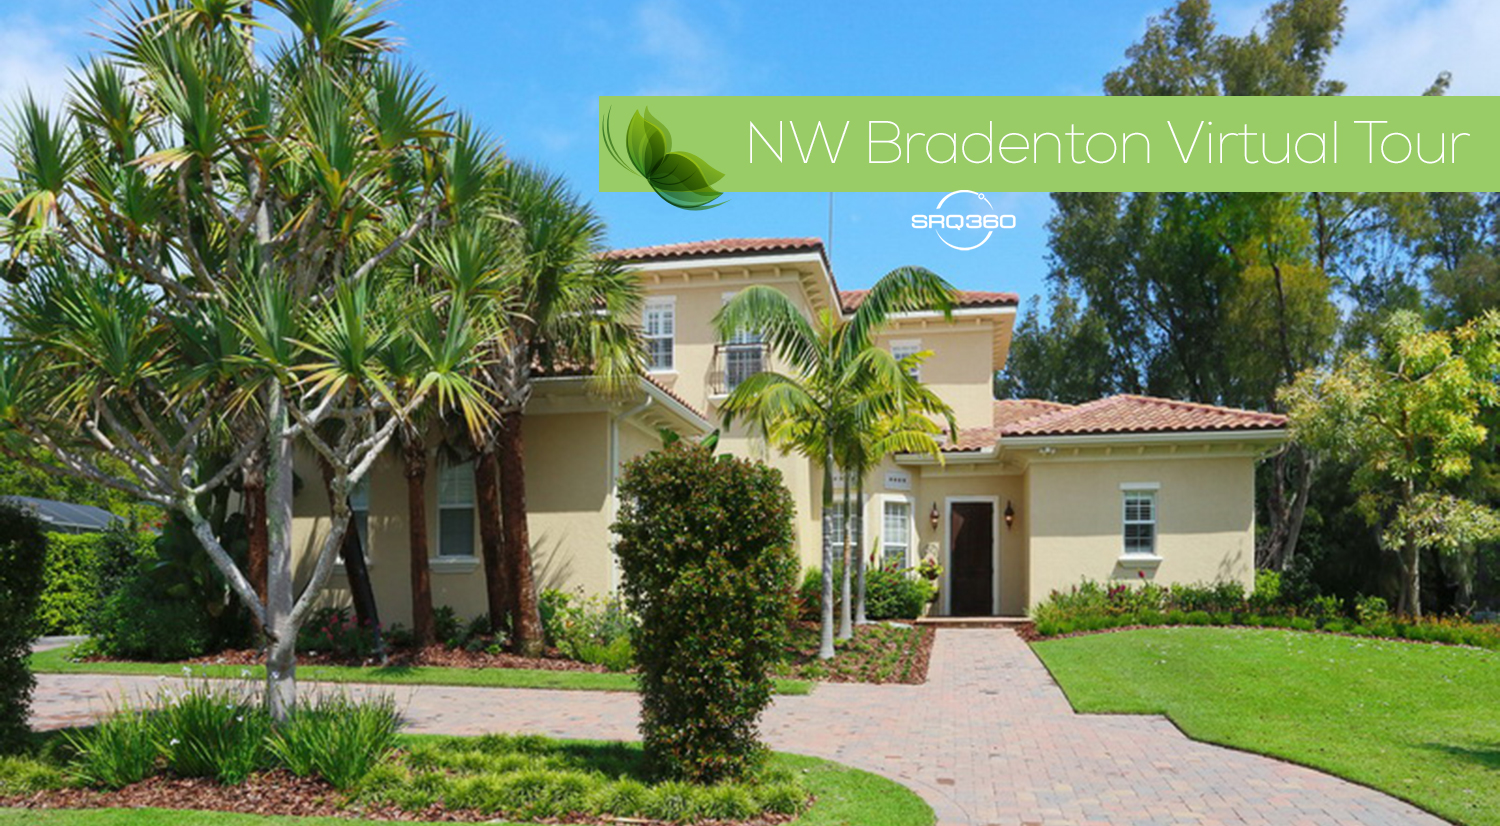 View this Spectacular NW Bradenton Custom Home Virtual Tour